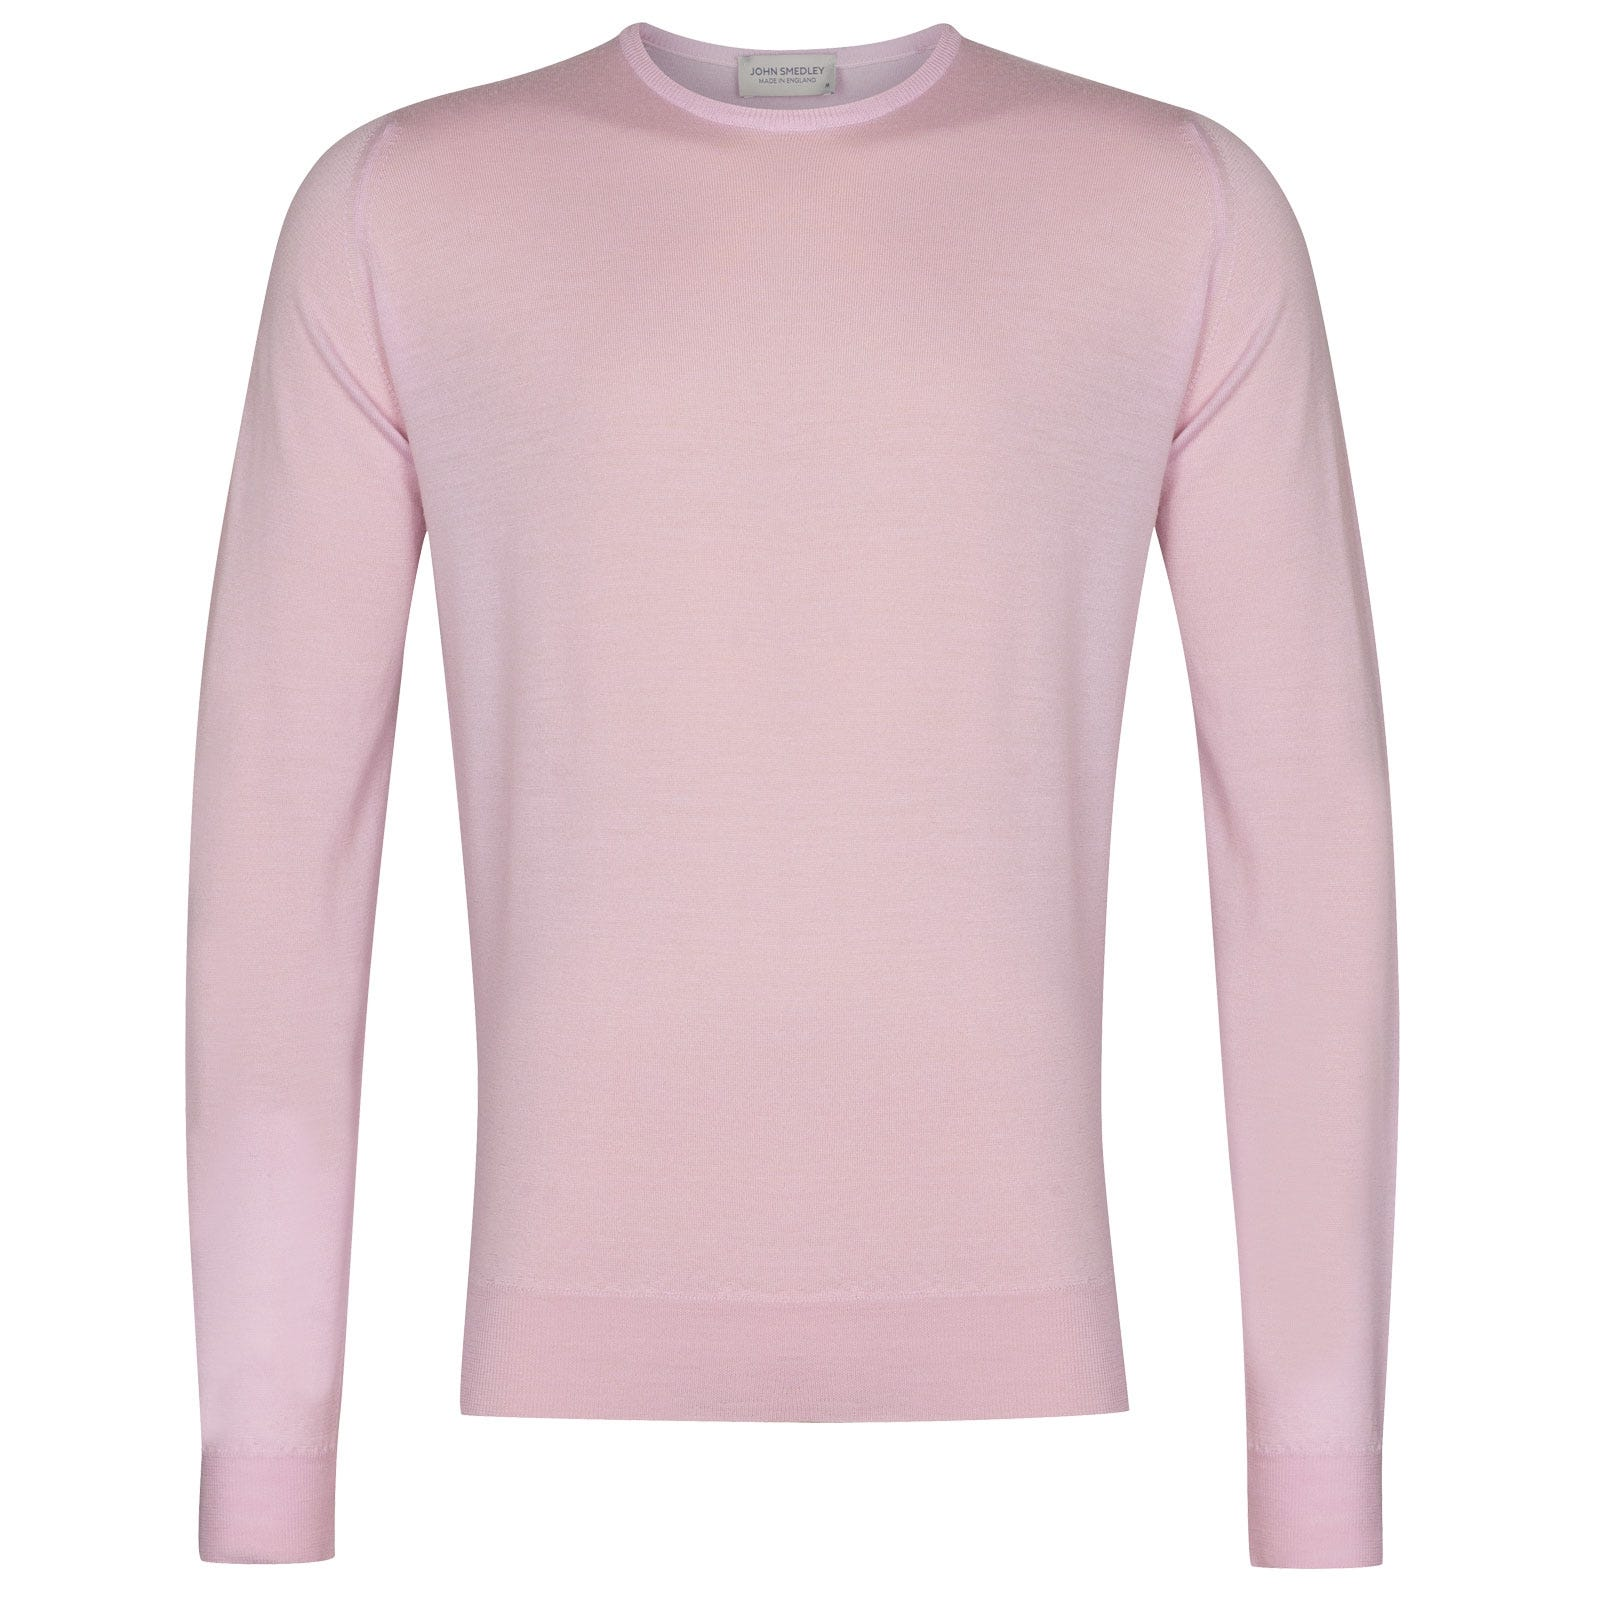 John Smedley Lundy in Pink Blossom Pullover-XLG